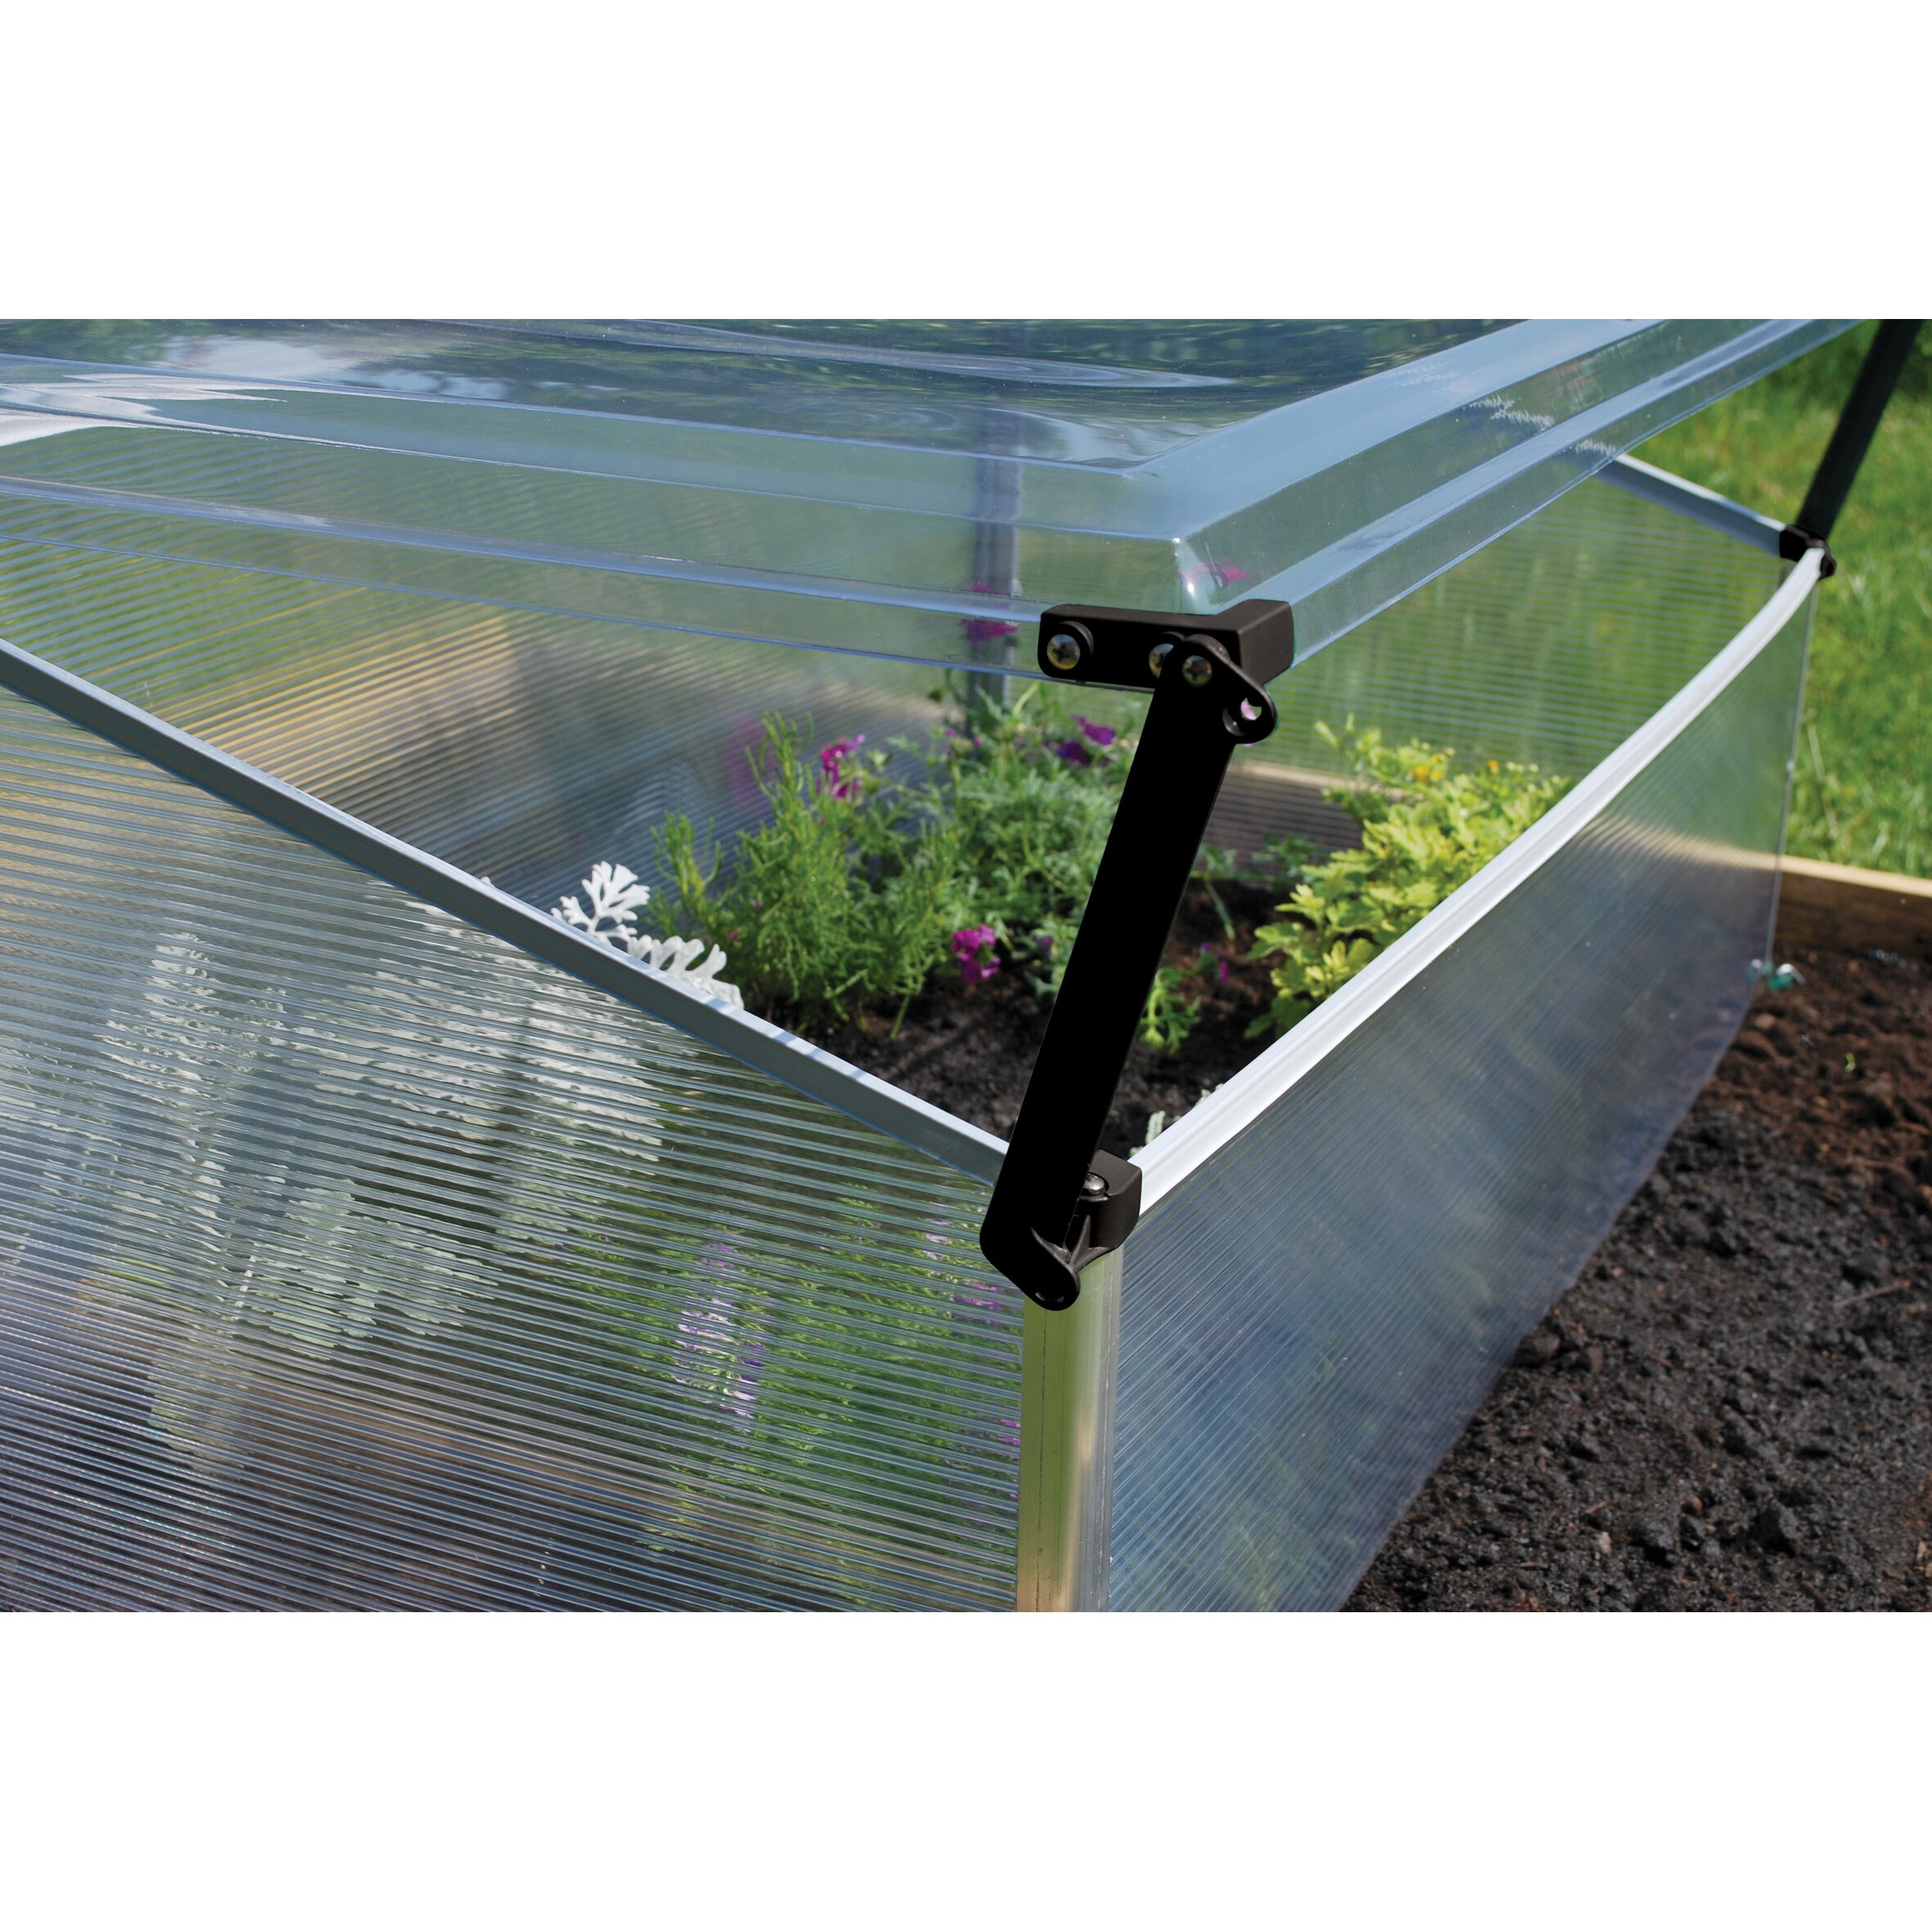 Palram 3.42 Ft. W X 2 Ft. D Cold-Frame Greenhouse